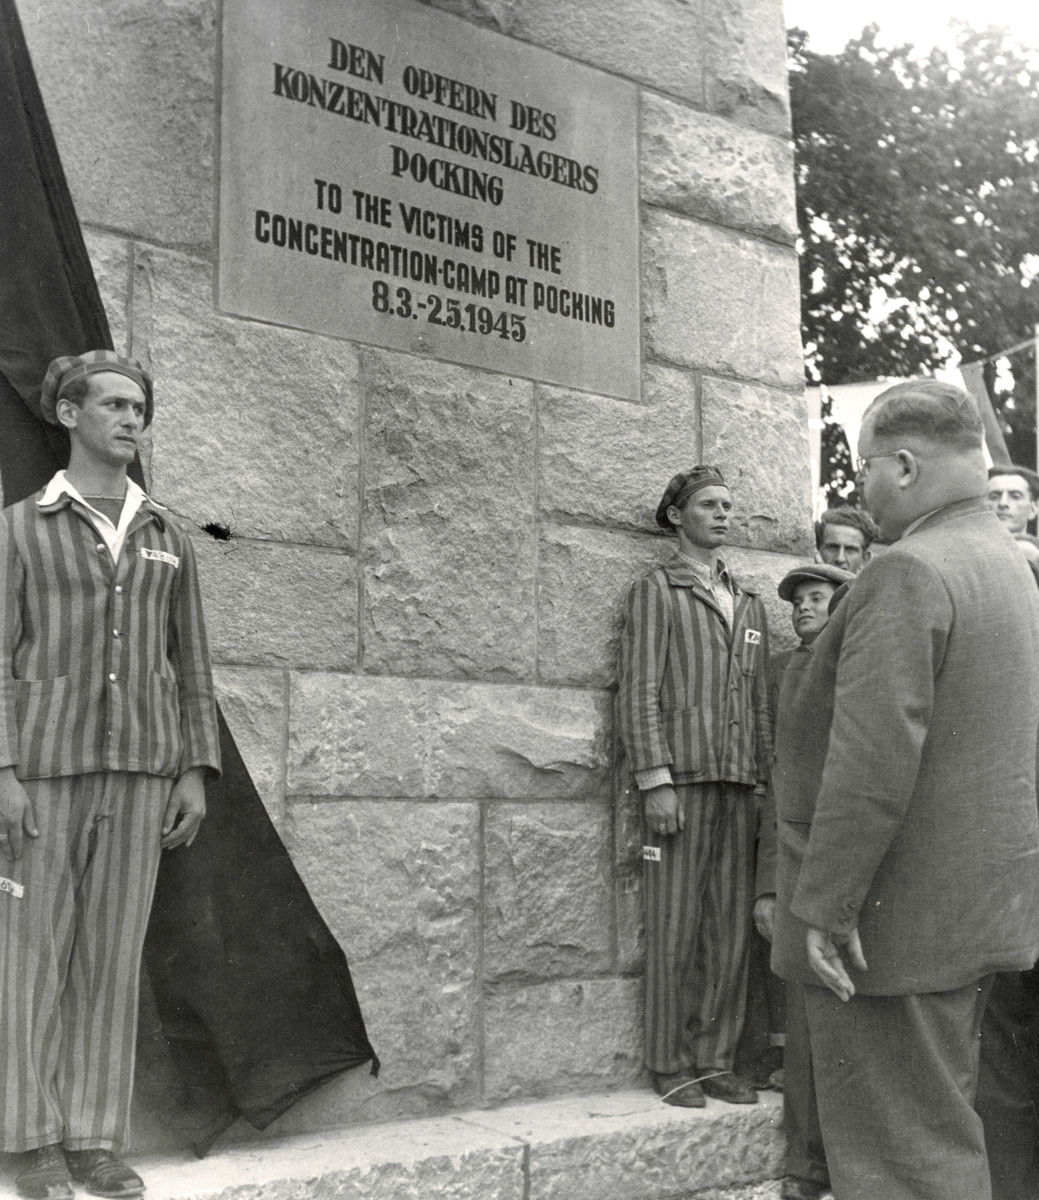 Two survivors wearing their concentration camp uniforms stand at attention in front of the newly dedicated monument to the victims of the Pocking concentration camp.  Philipp Auerbach stands in front paying his respects.